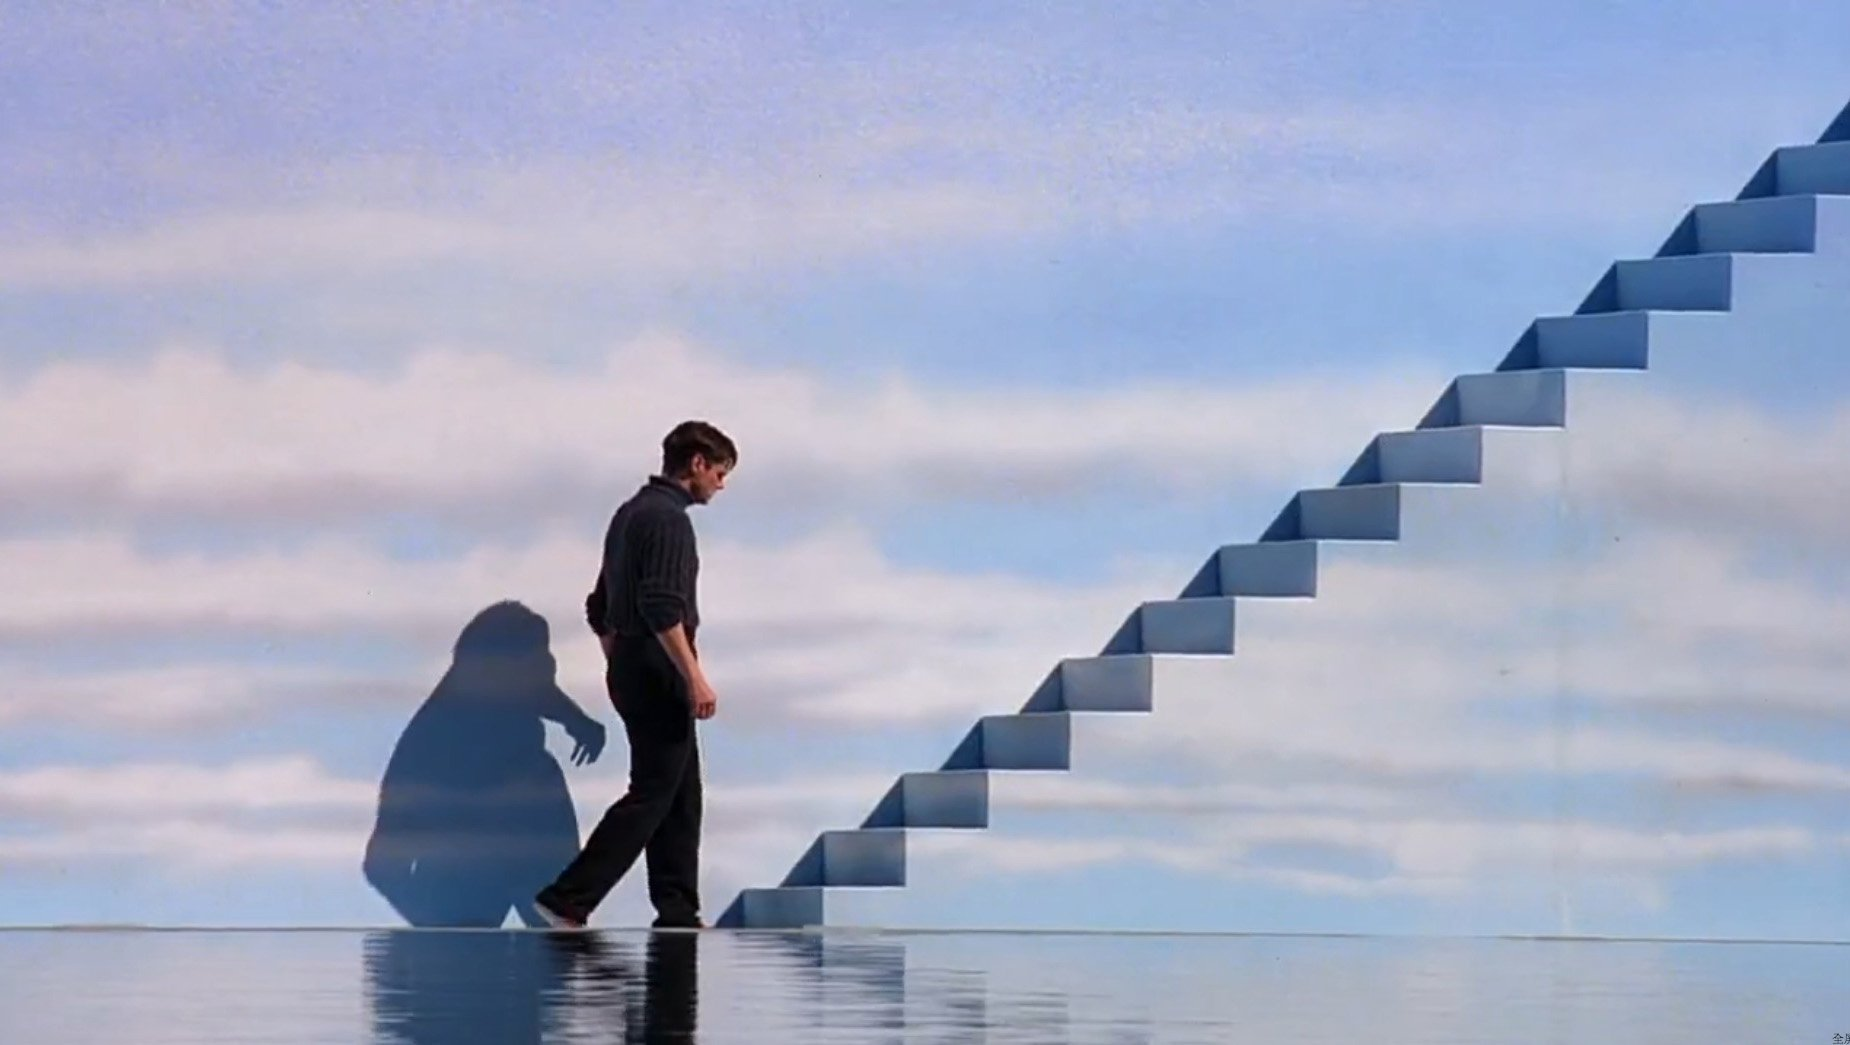 Image from The Truman Show (1998)